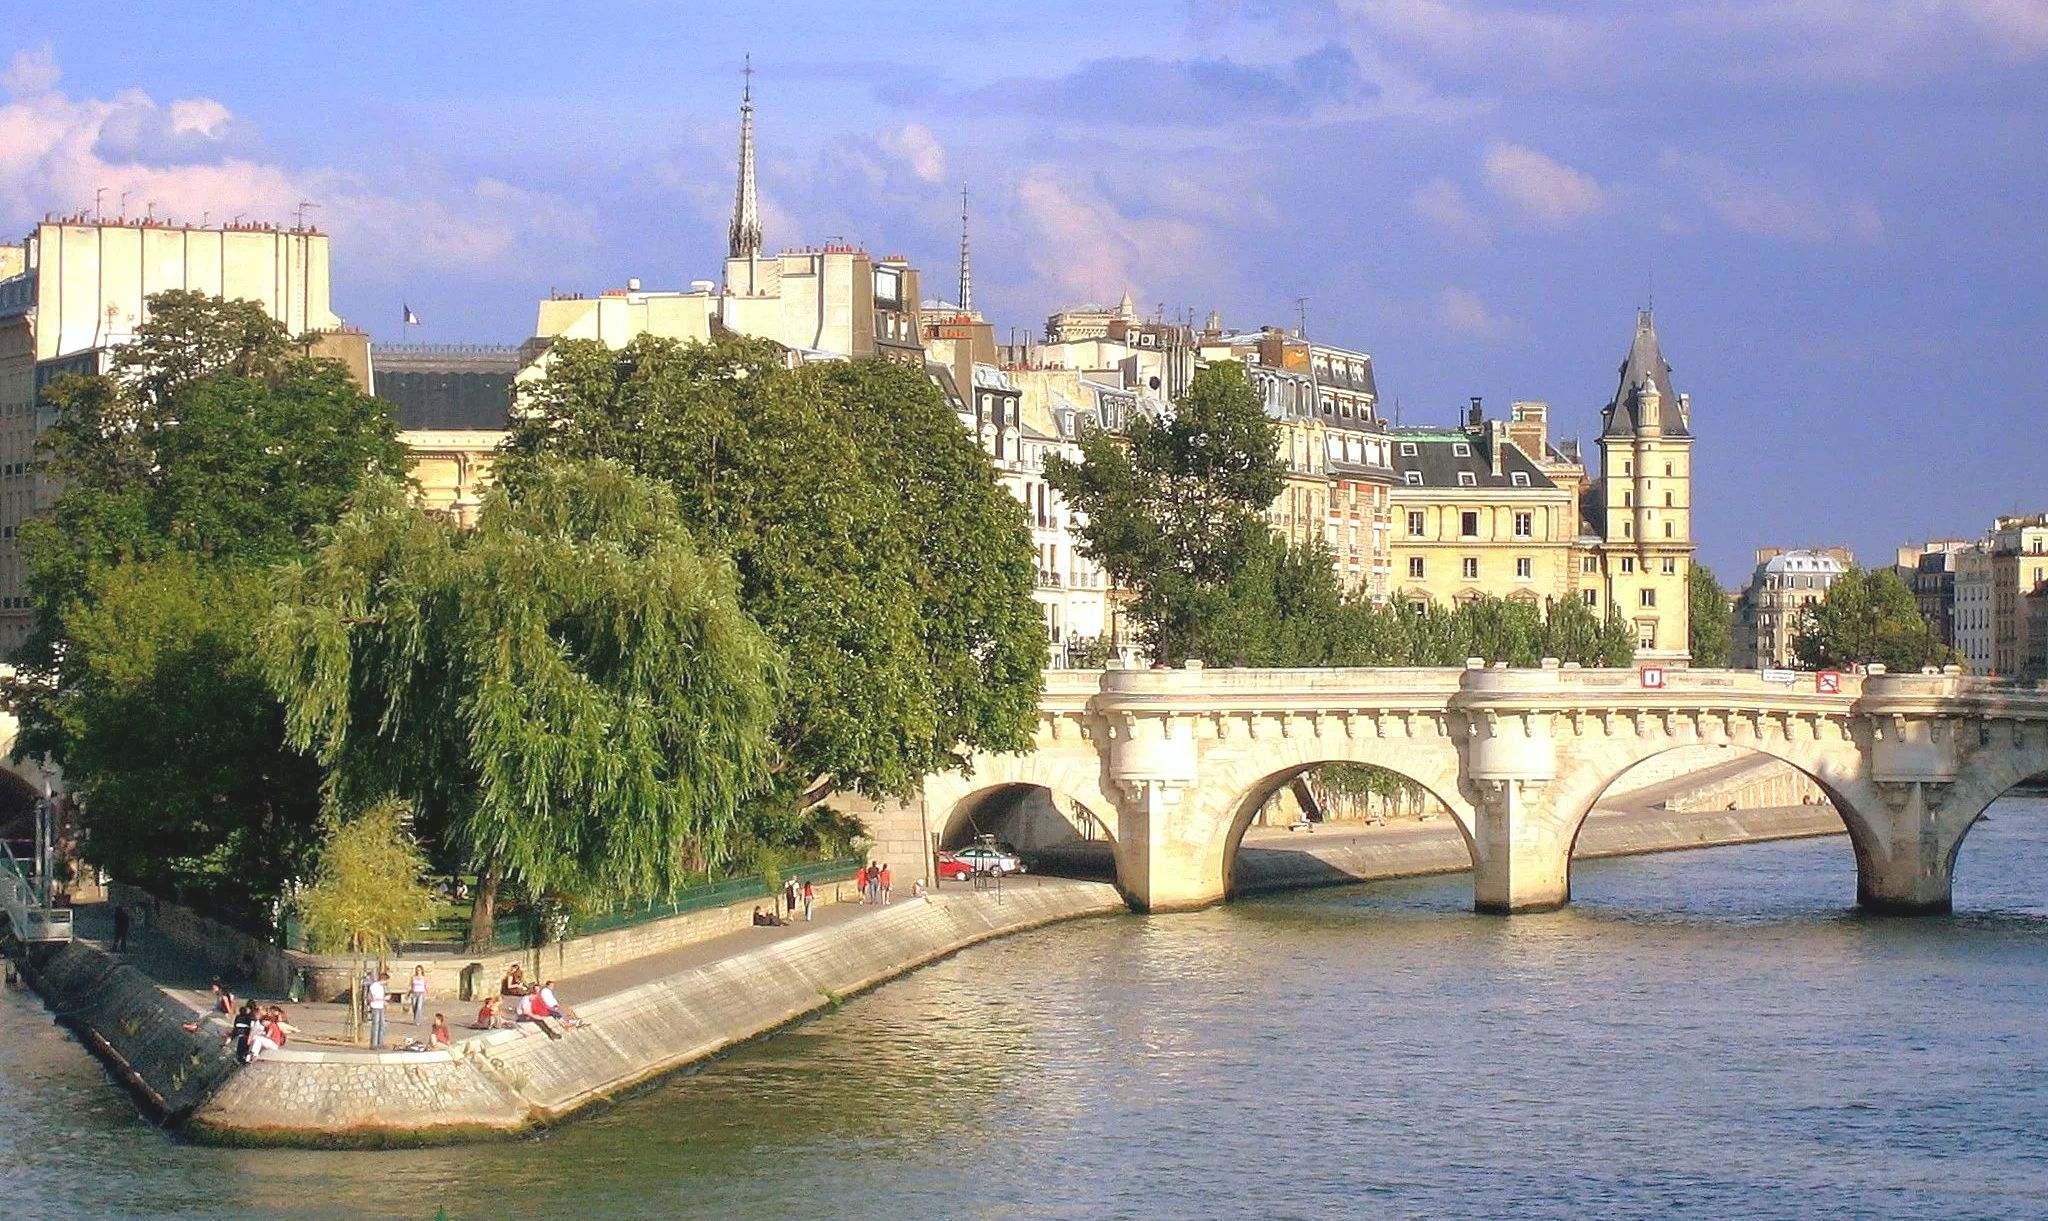 The River Seine in Paris France